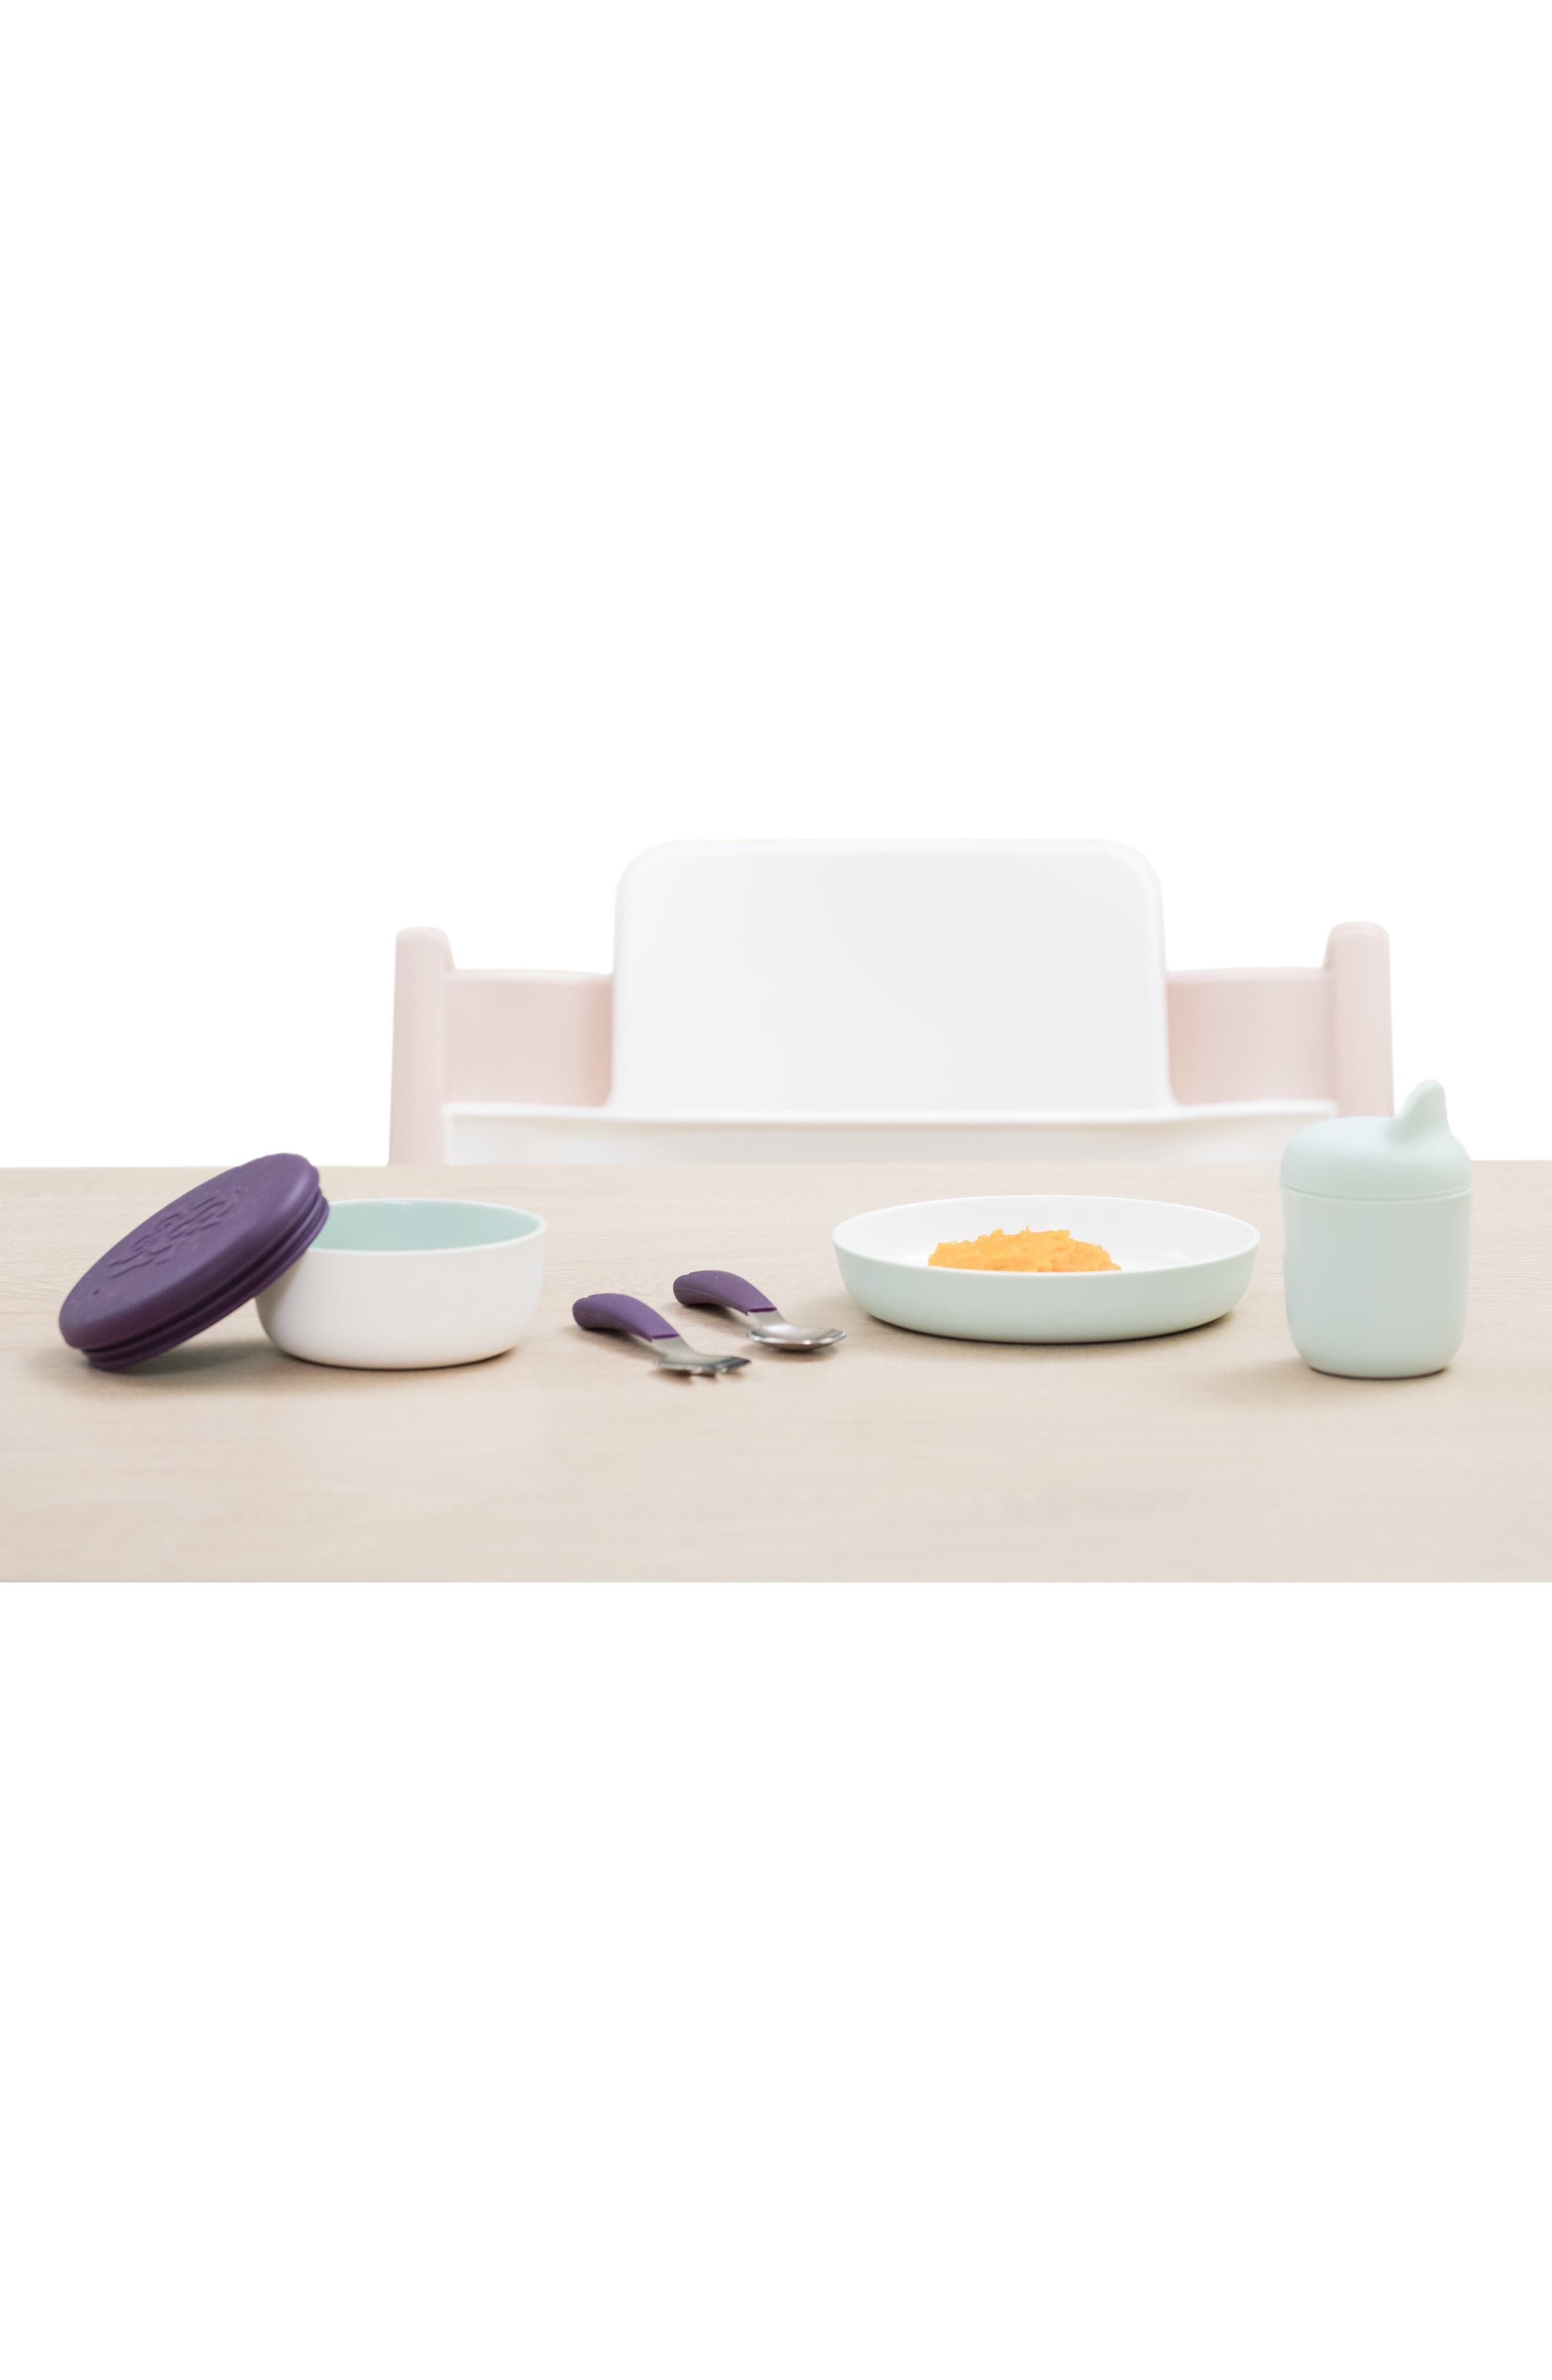 STOKKE, Munch Complete Lidded Bowl, Sippy Cup, Plate, Fork & Spoon Set, Alternate thumbnail 8, color, SOFT MINT